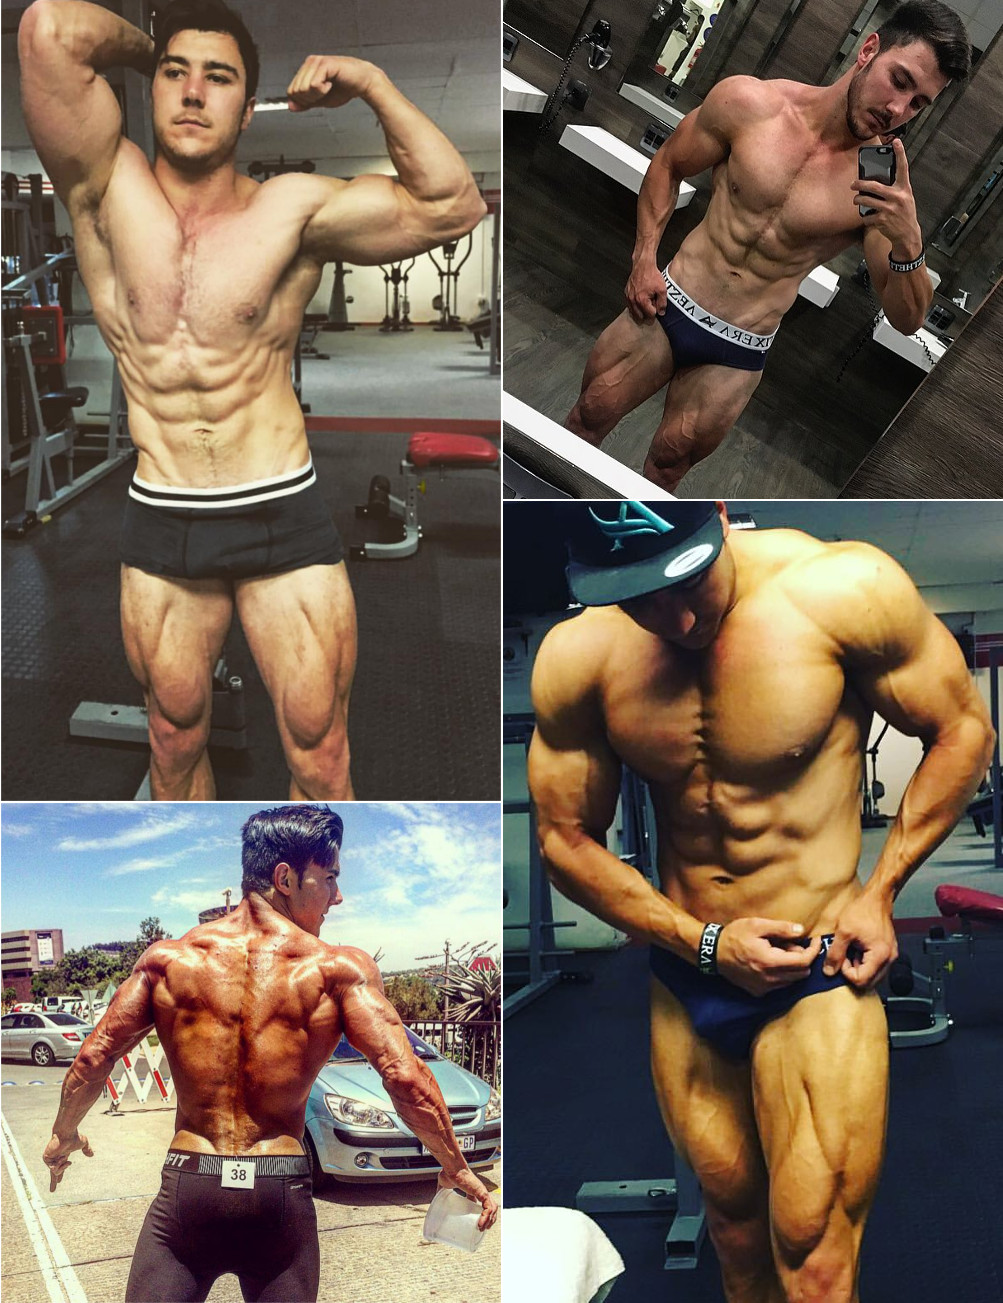 Fitnish.com interview With WBFF Pro, Matthew Larkins